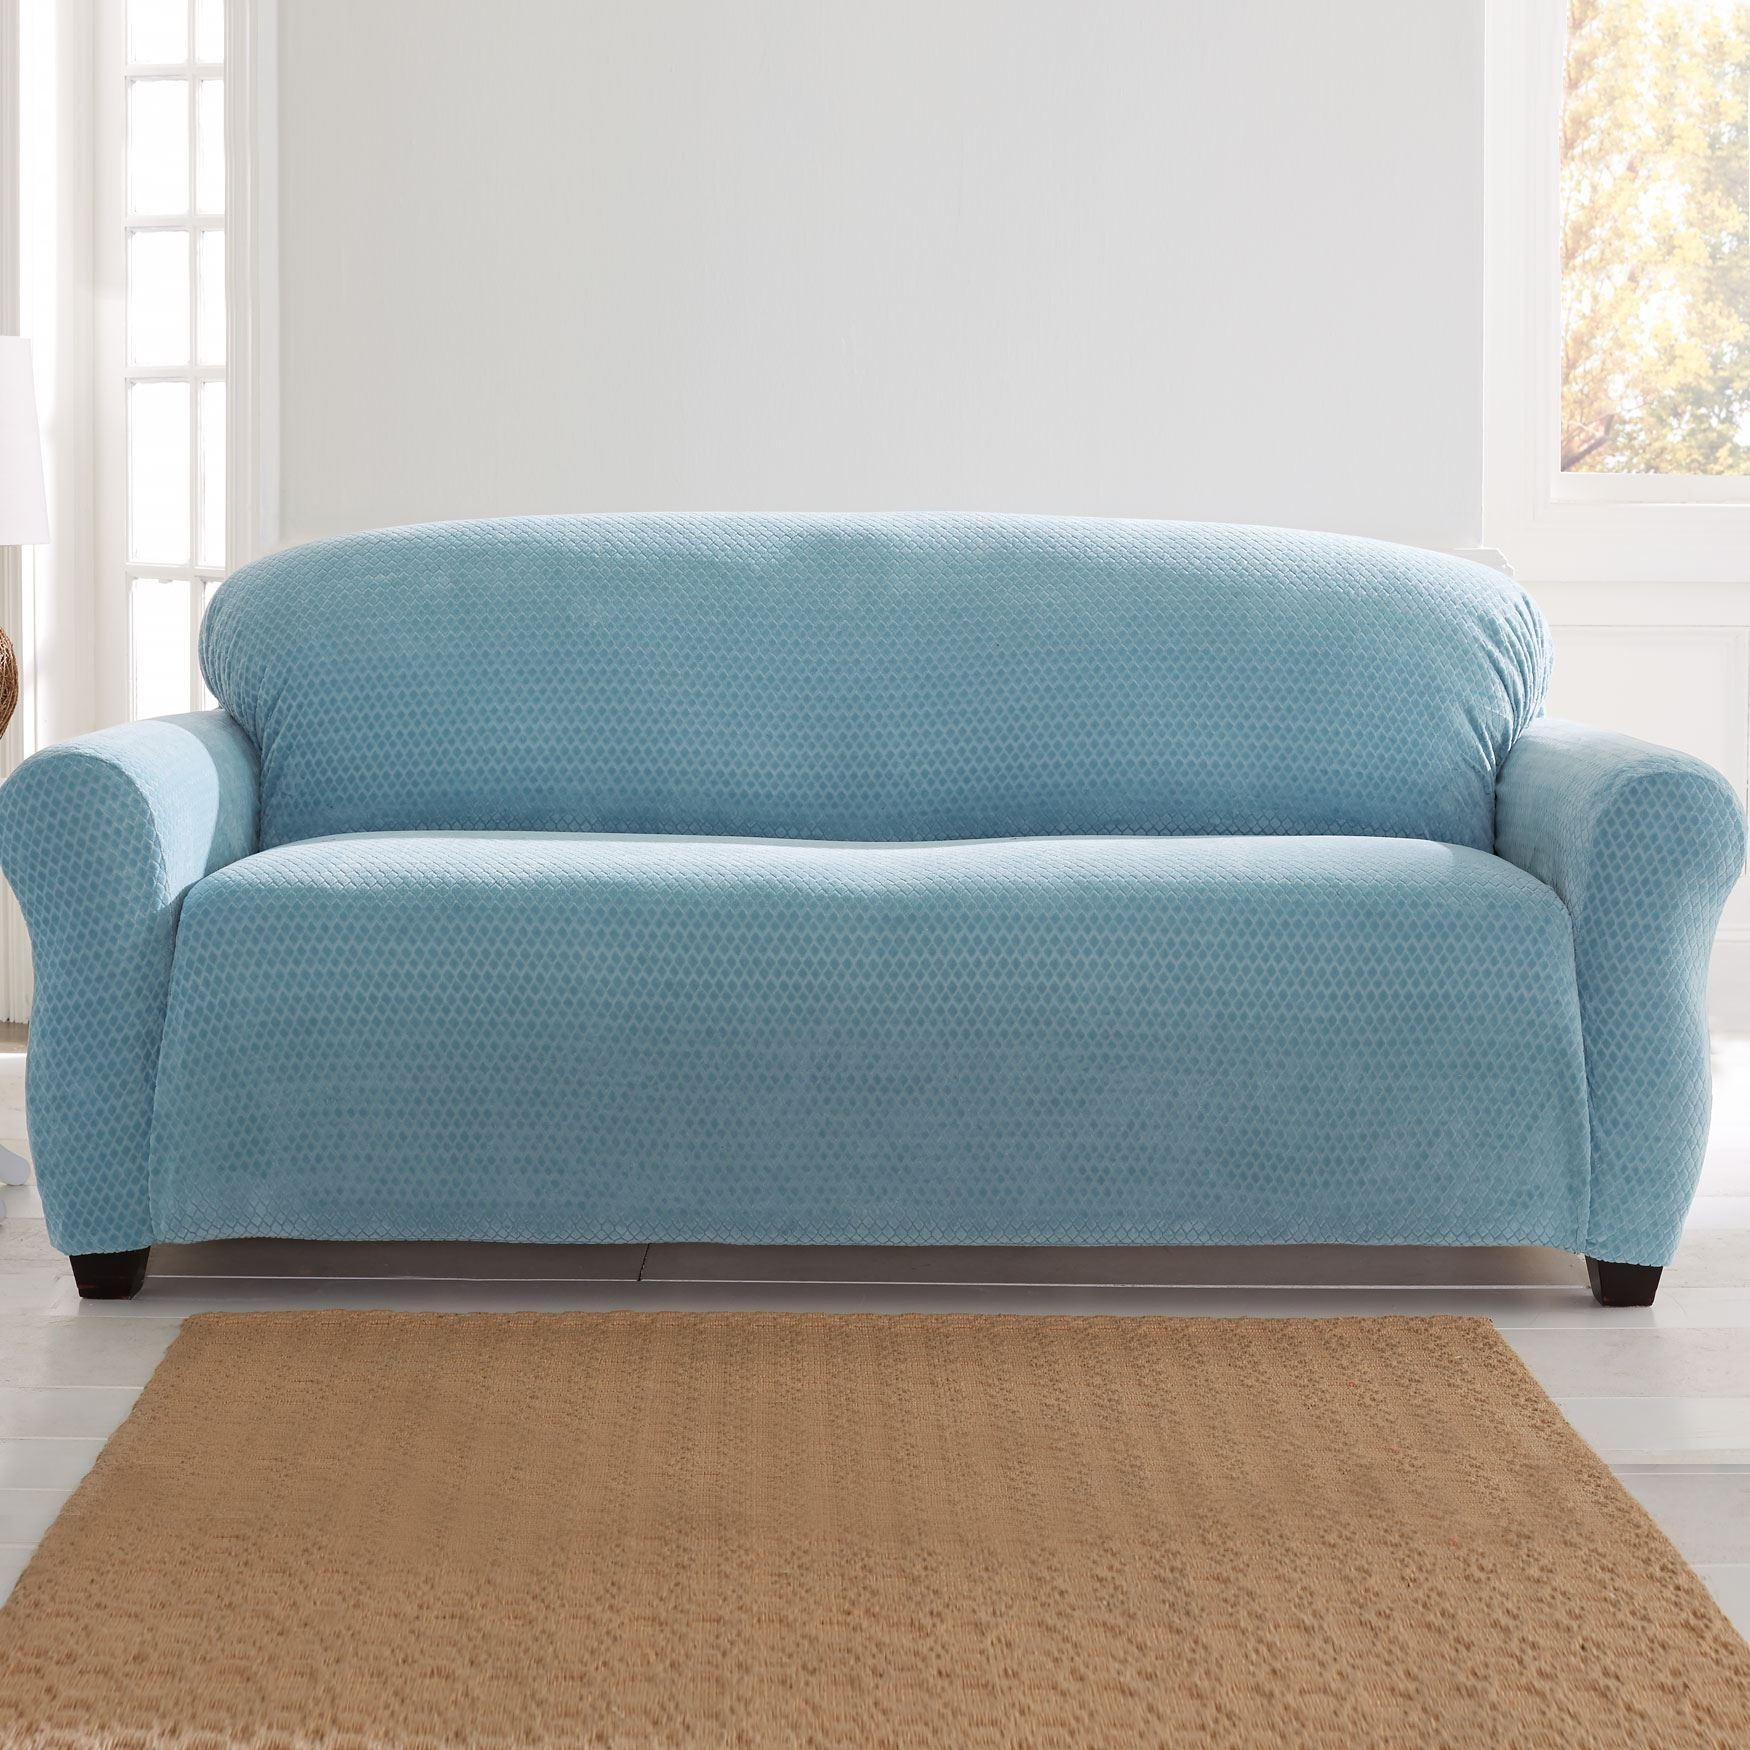 Furniture: Cool Stretch Sofa Covers To Protect And Renew Your Sofa Regarding Stretch Covers For Recliners (Image 10 of 20)